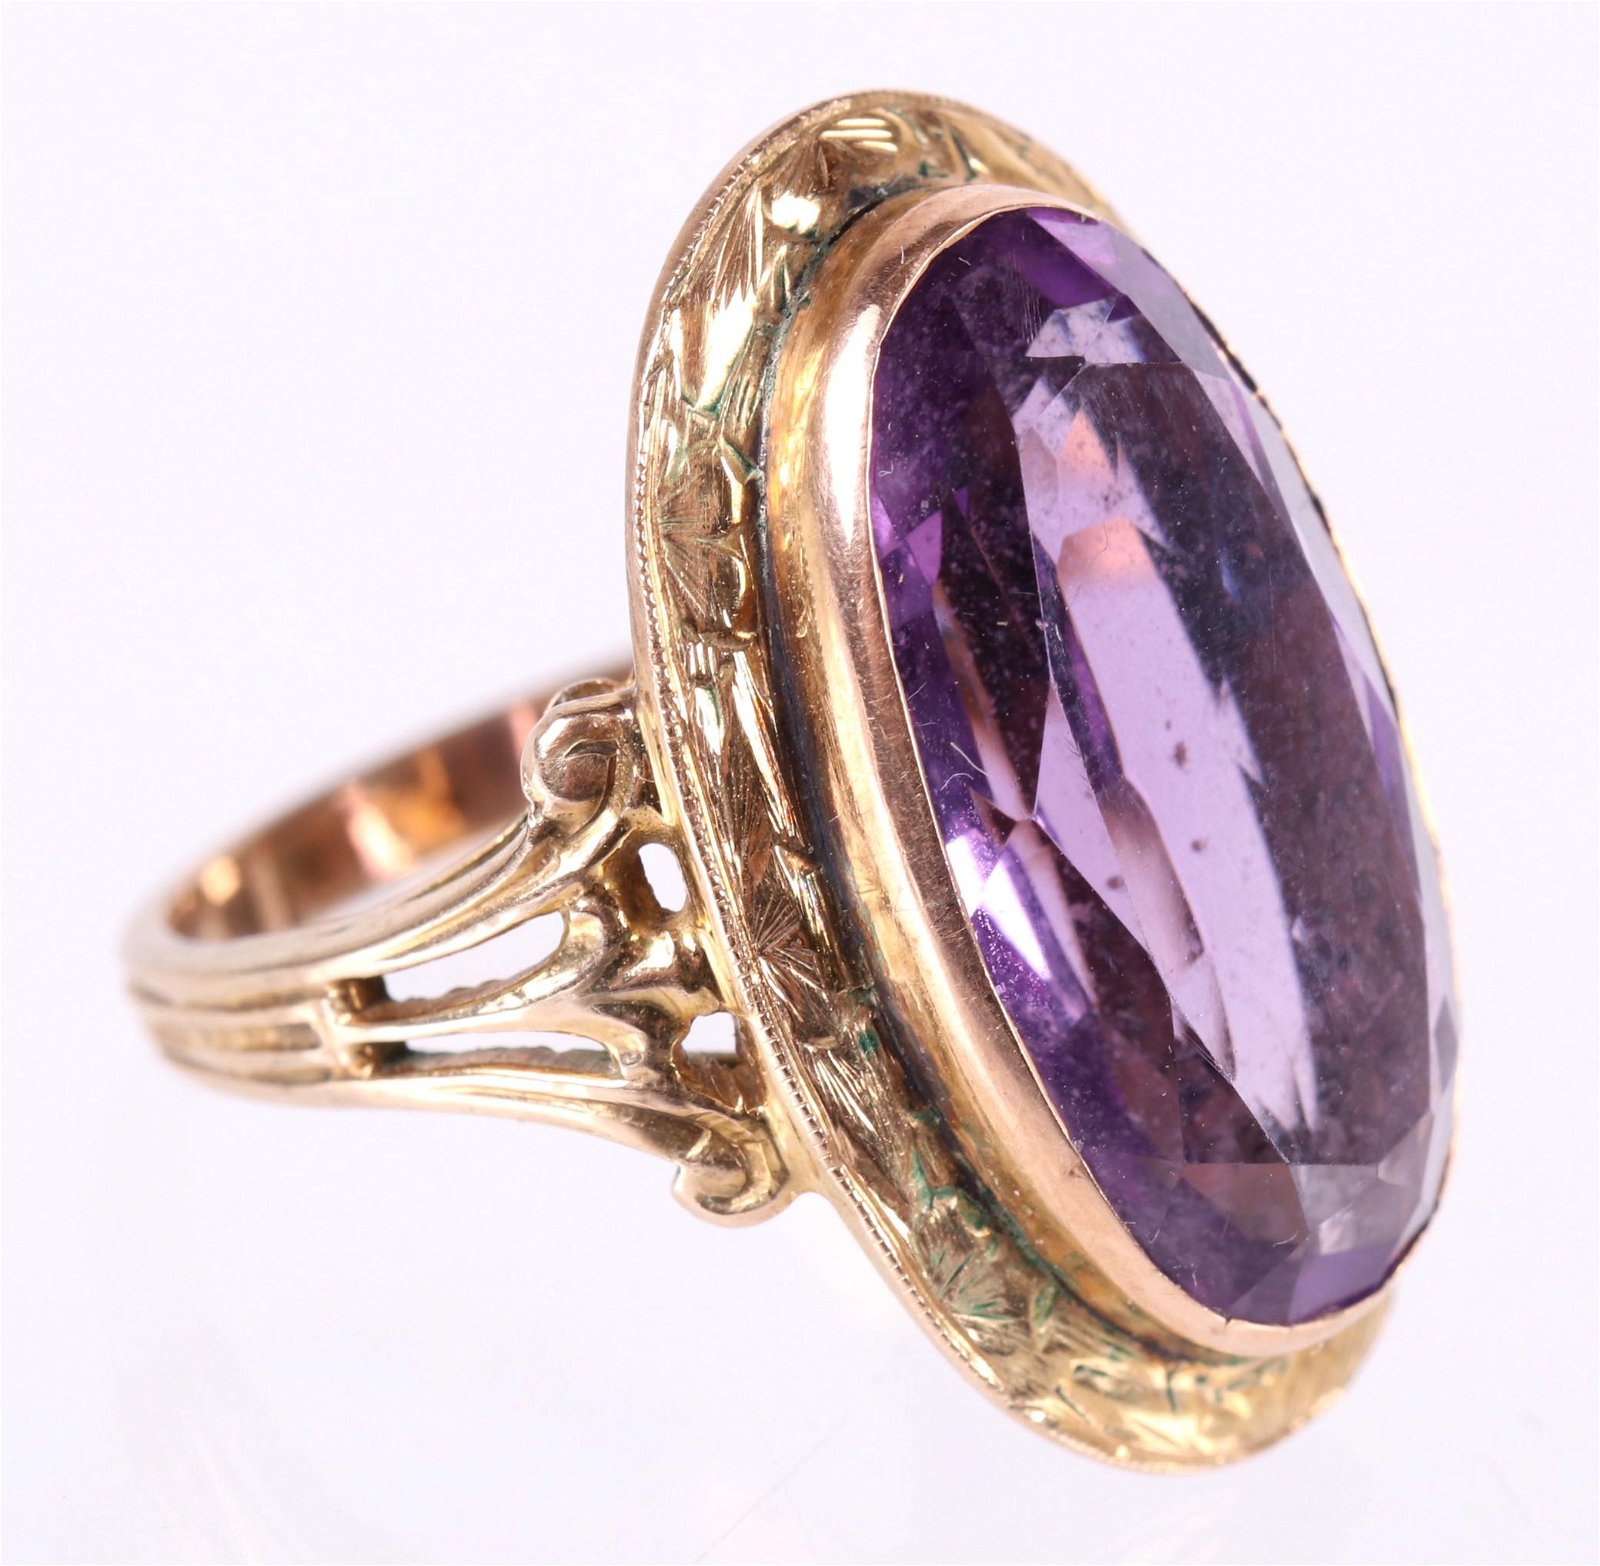 A 14k Gold and Amethyst Cocktail Ring